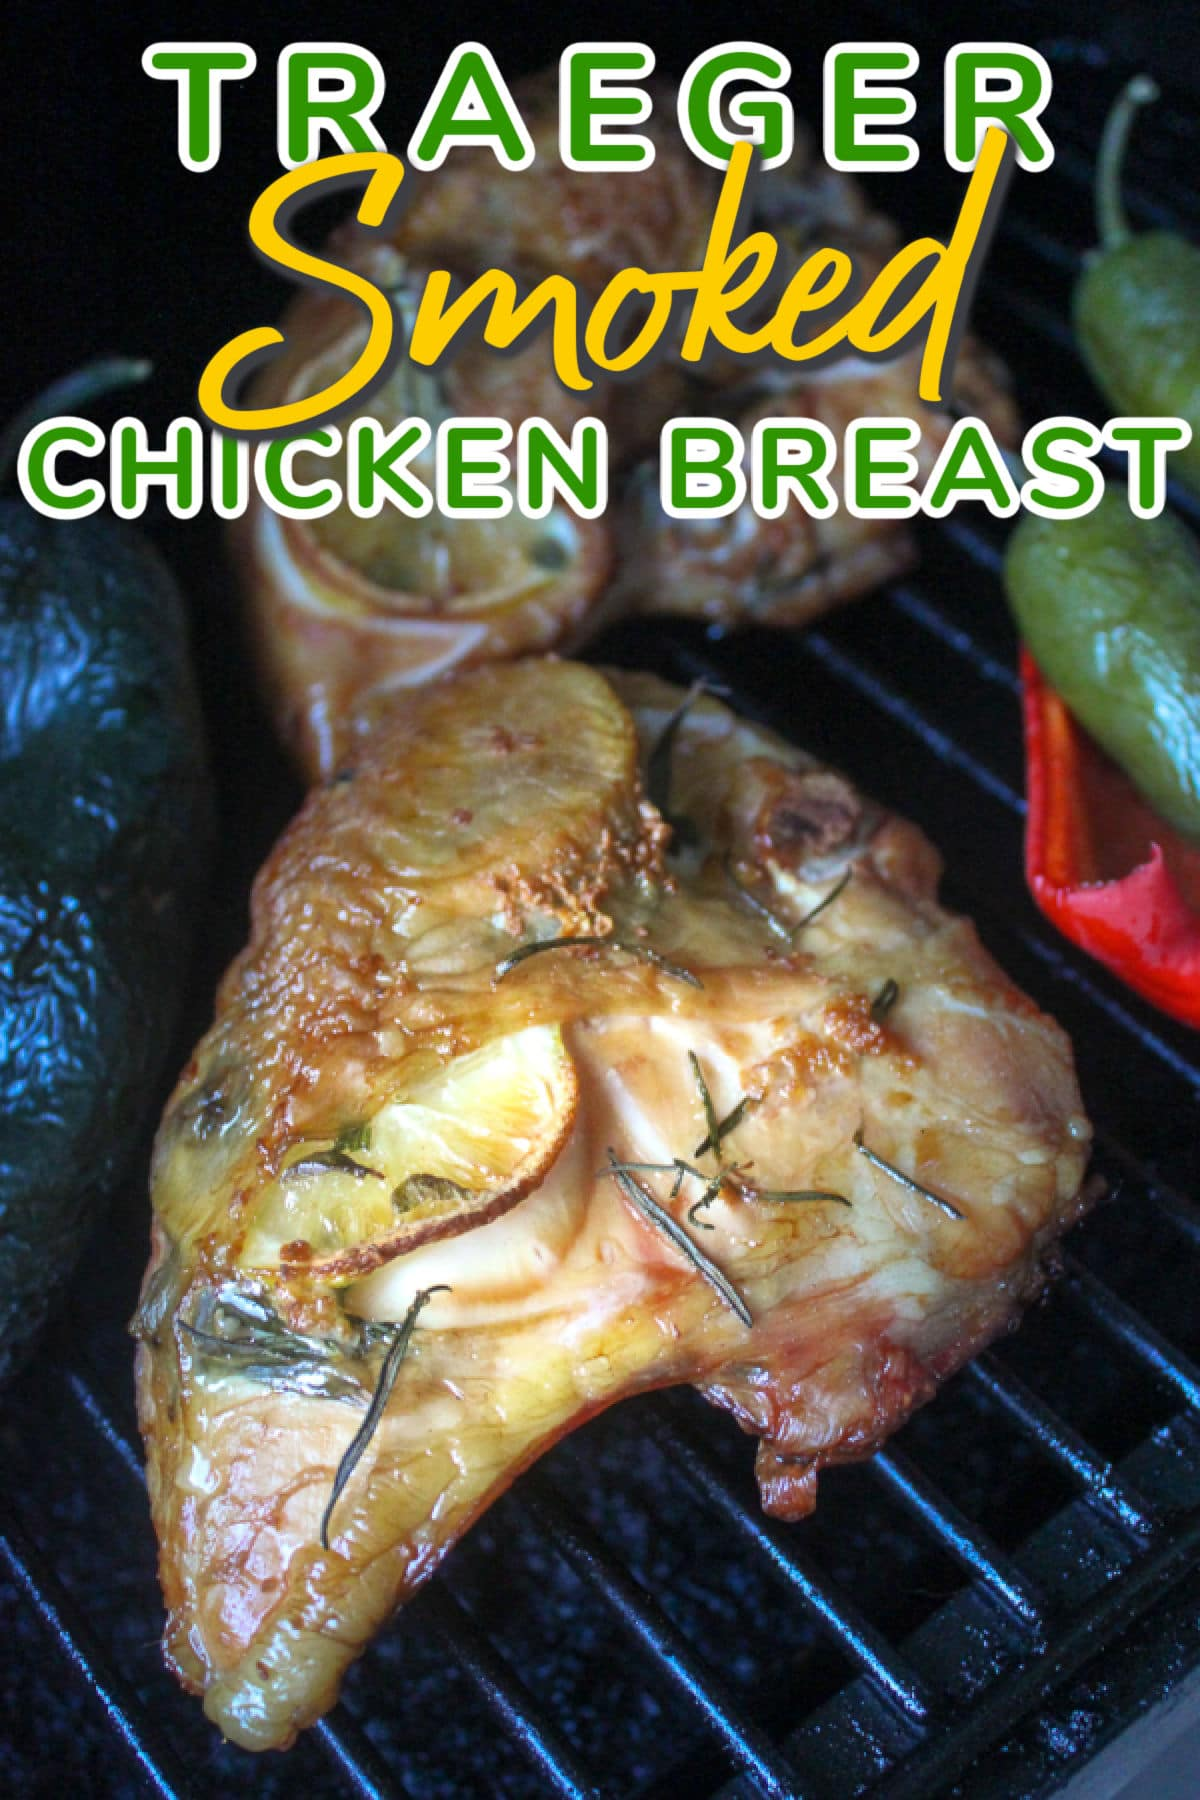 Chicken breast can be tricky when you grill or smoke it - it can dry out easily. BUT I've got you covered!!!! This smoked chicken breast was juicy and delicious with that smokey flavor that only comes from those yummy Traeger wood pellets!  via @foodhussy